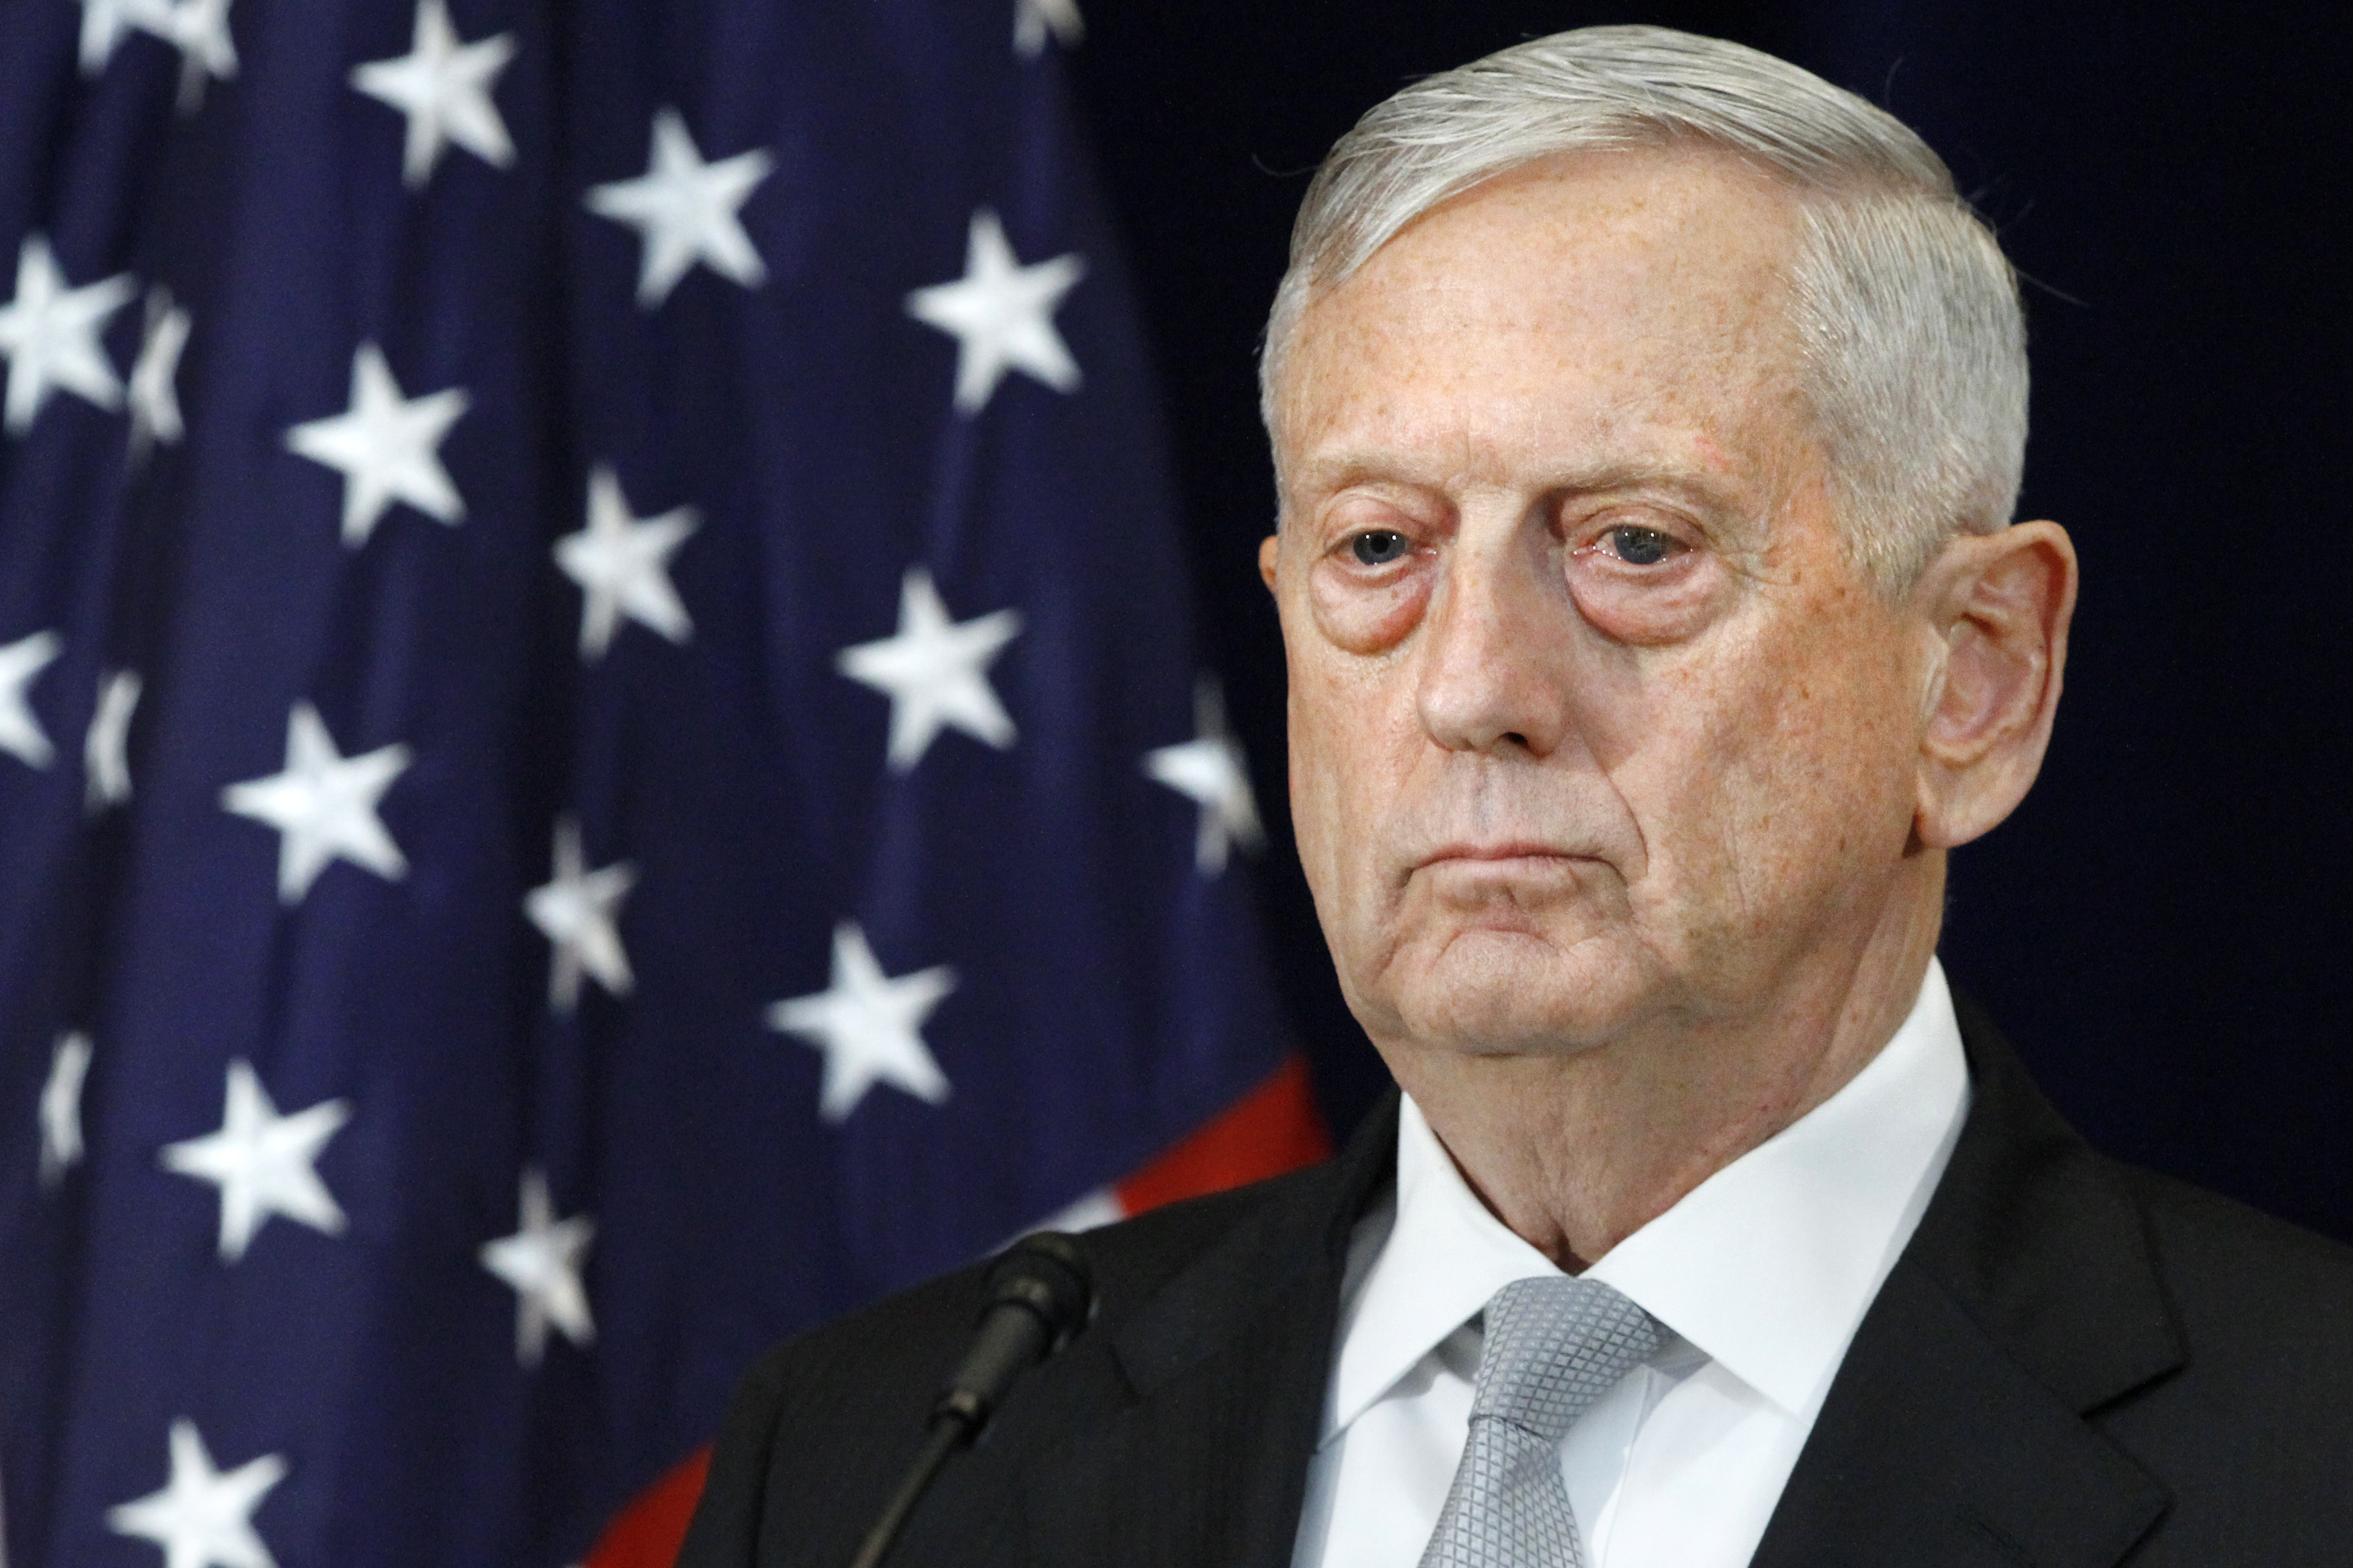 Defense Secretary James Mattis attends a news conference, Thursday, Aug. 17, 2017, at the State Department in Washington.